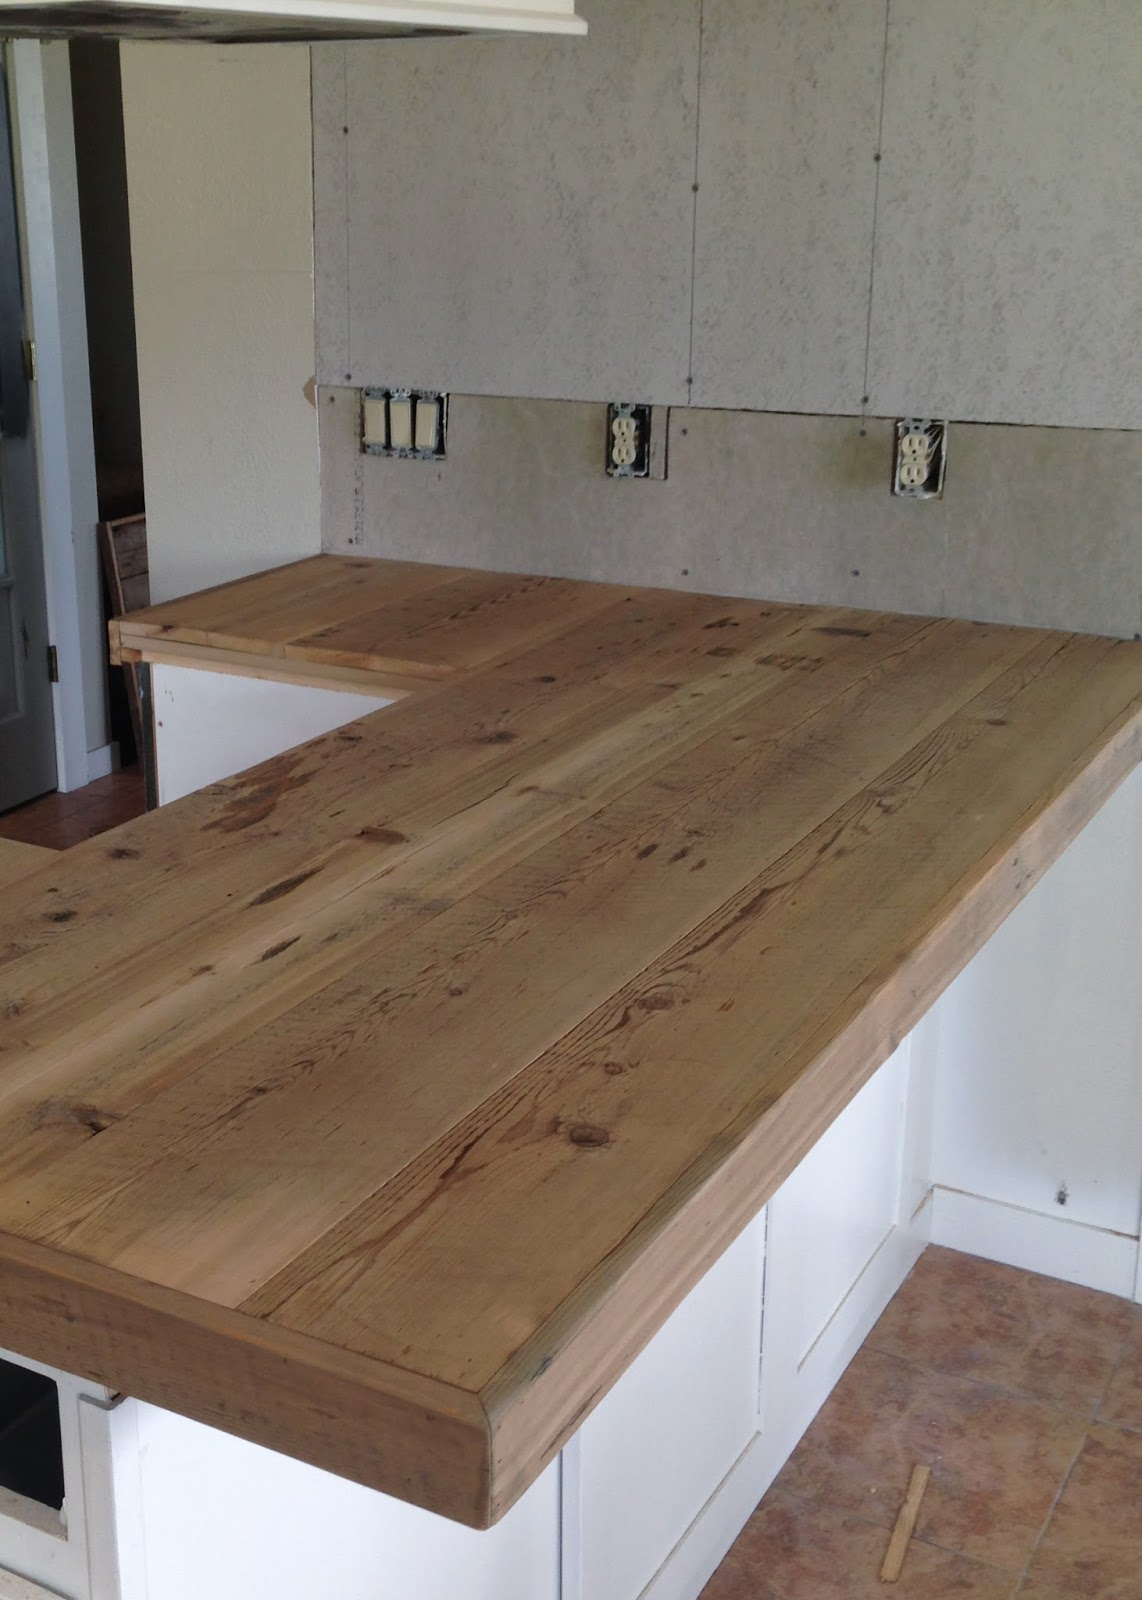 Diy Reclaimed Wood Countertop Averie Lane Diy Reclaimed